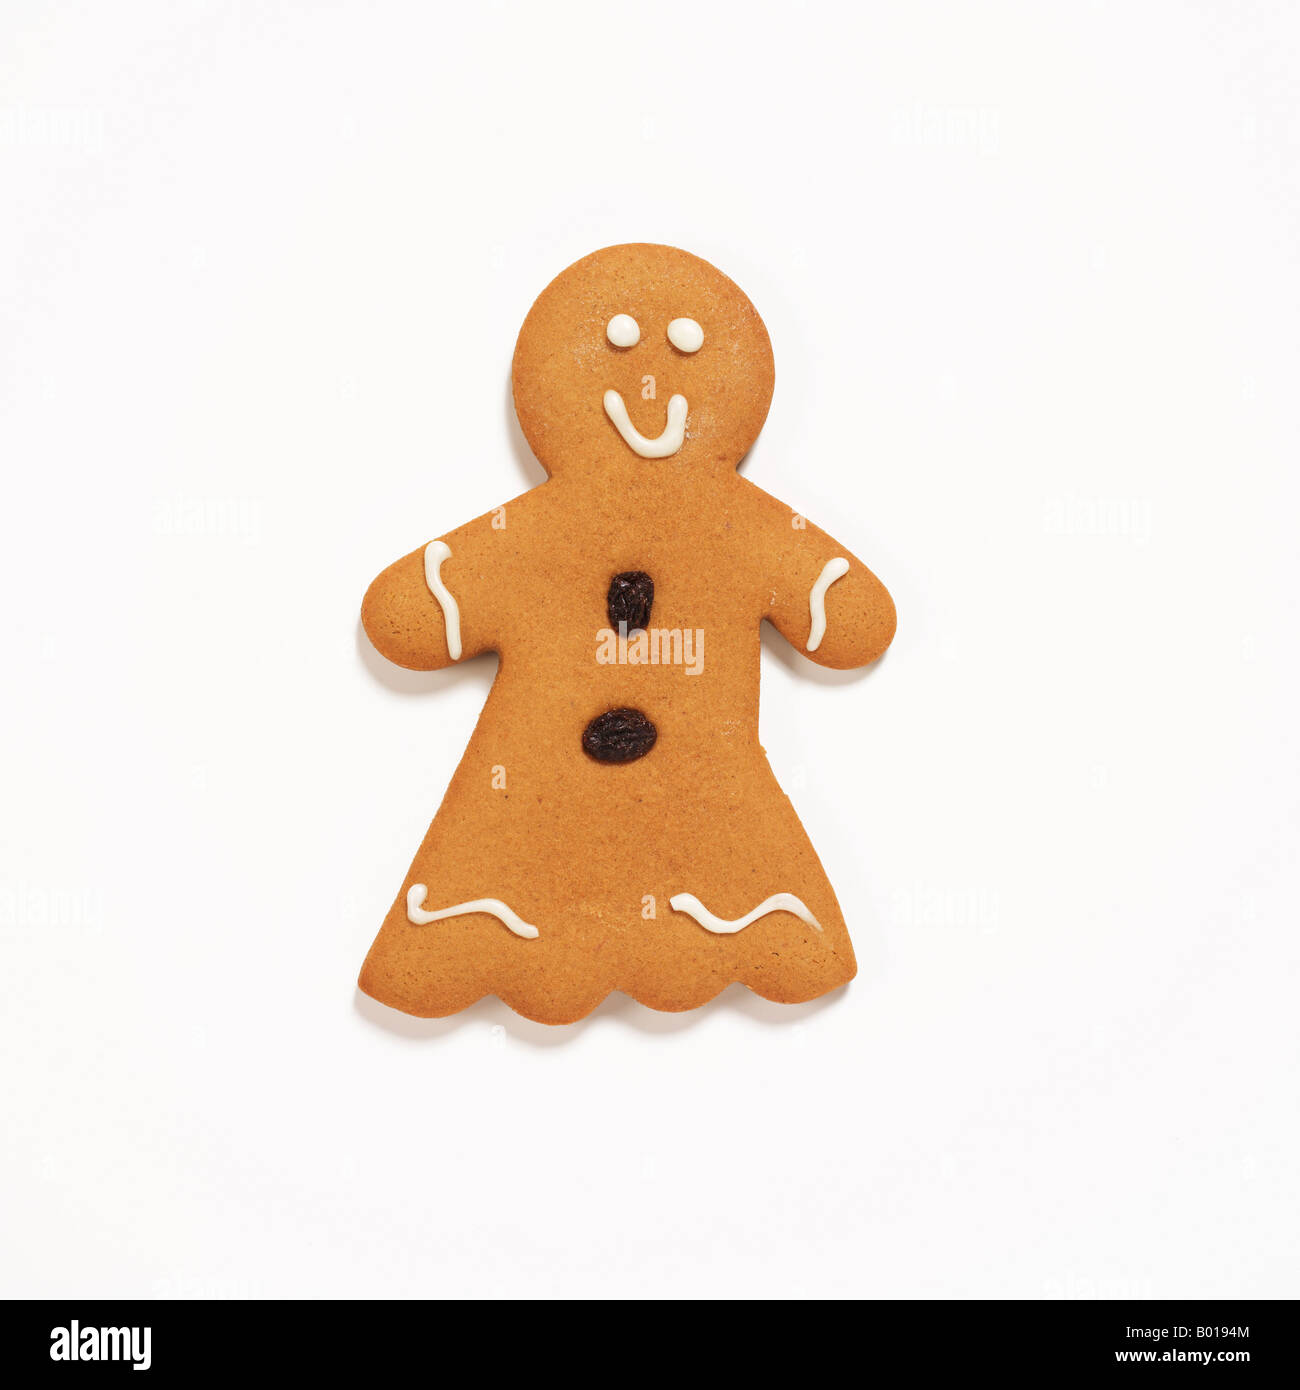 gingerbread cookie - Stock Image